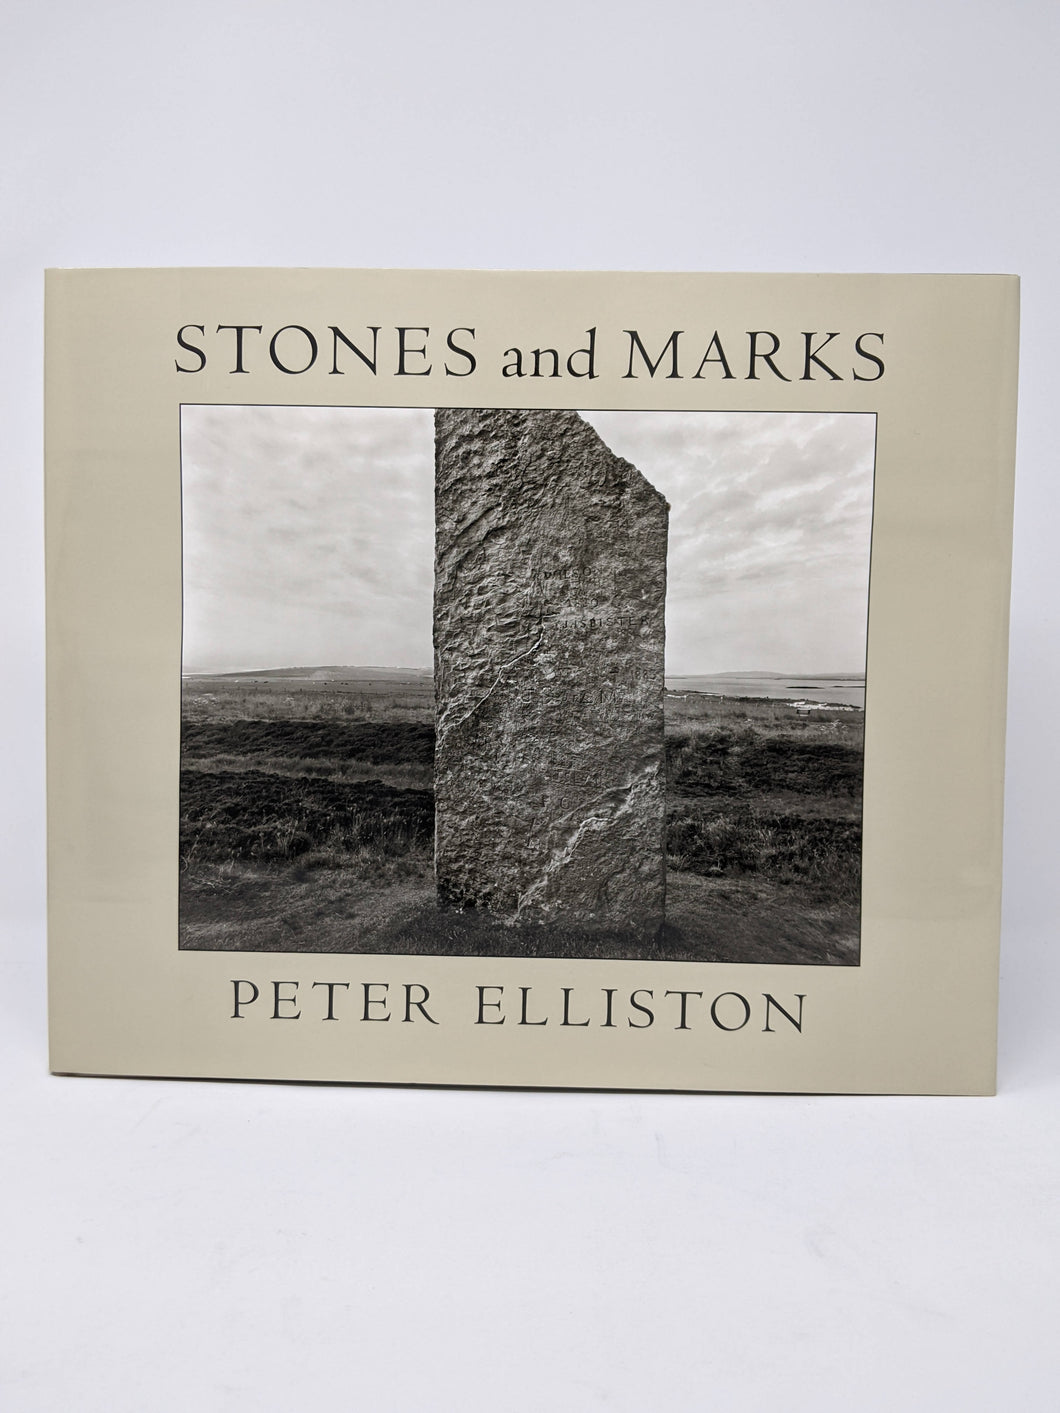 SALE -Stones and Marks by Peter Elliston